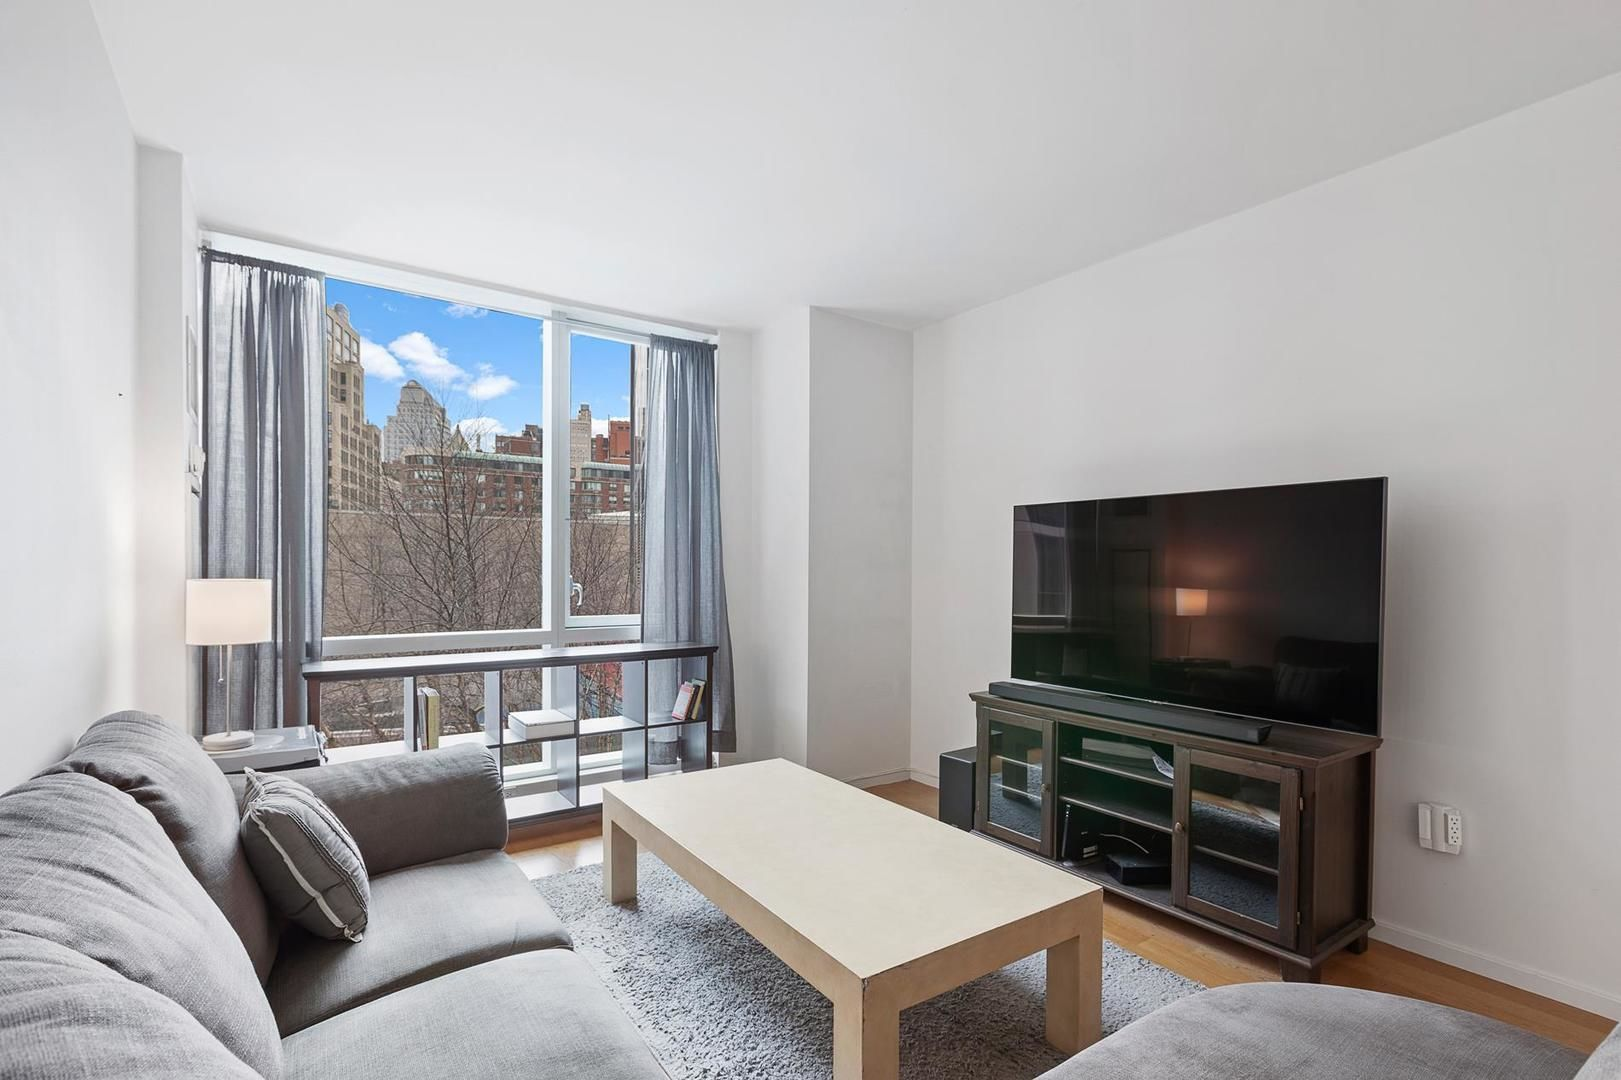 Apartment for sale at 200 Chambers Street, Apt 3-G